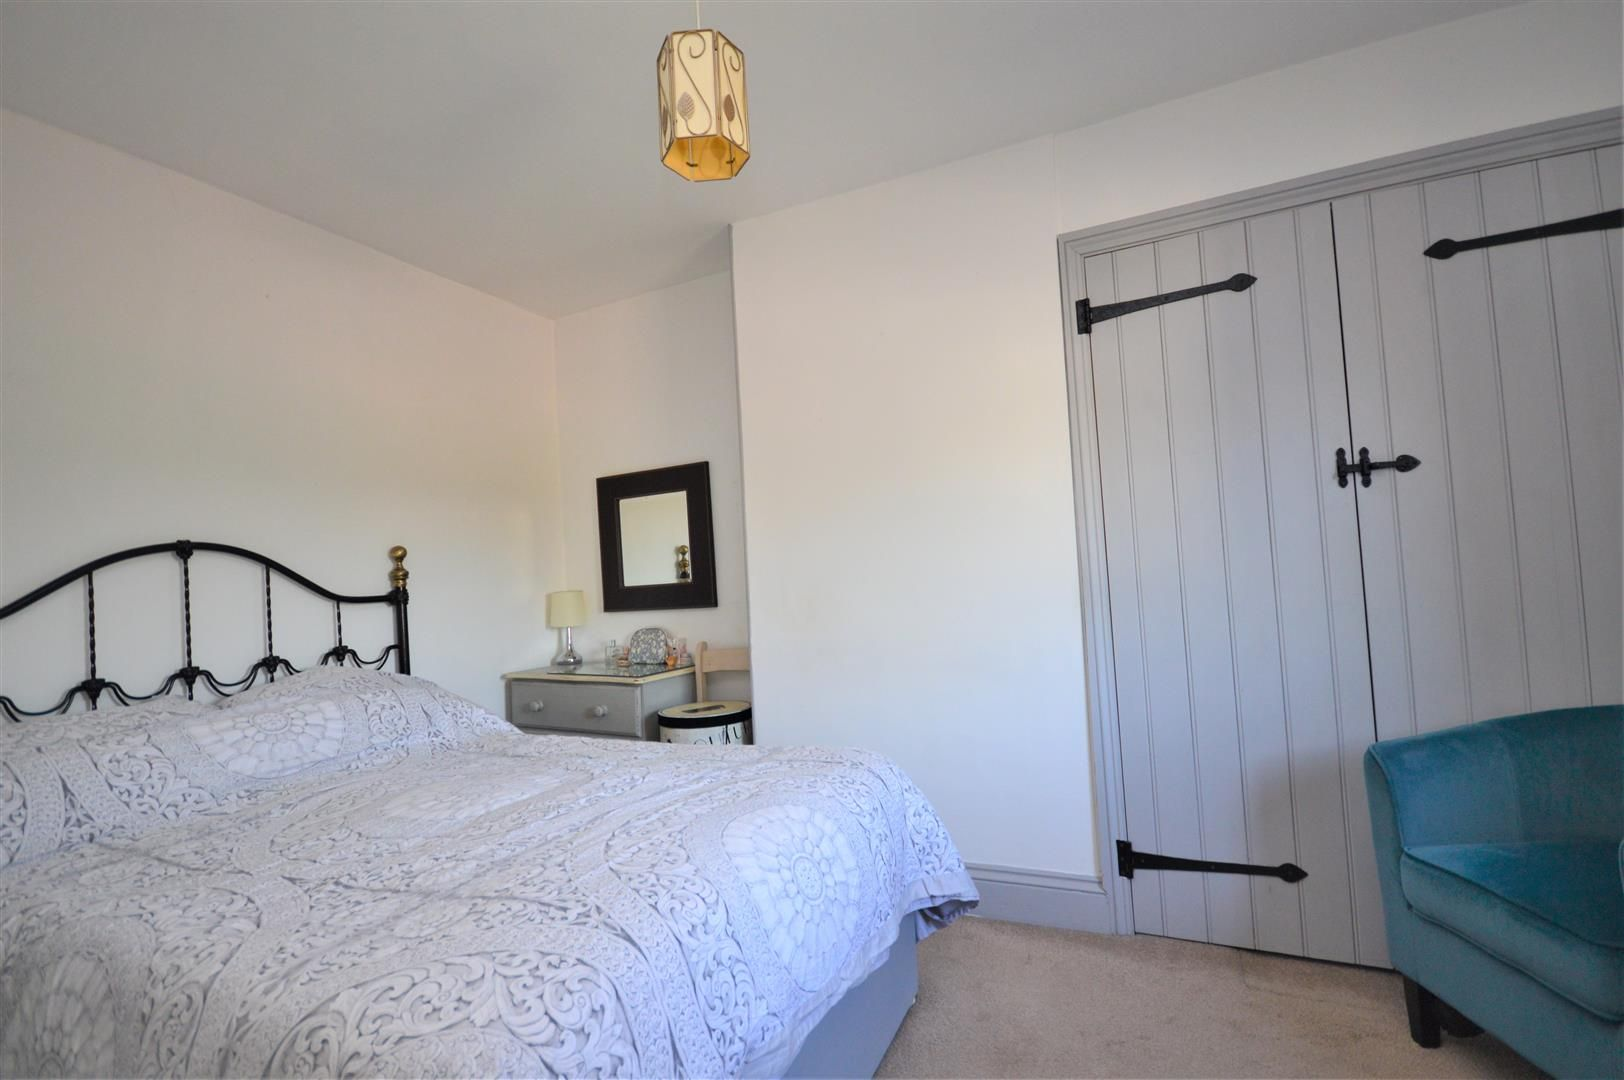 1 bed end-of-terrace for sale in Callow  - Property Image 7